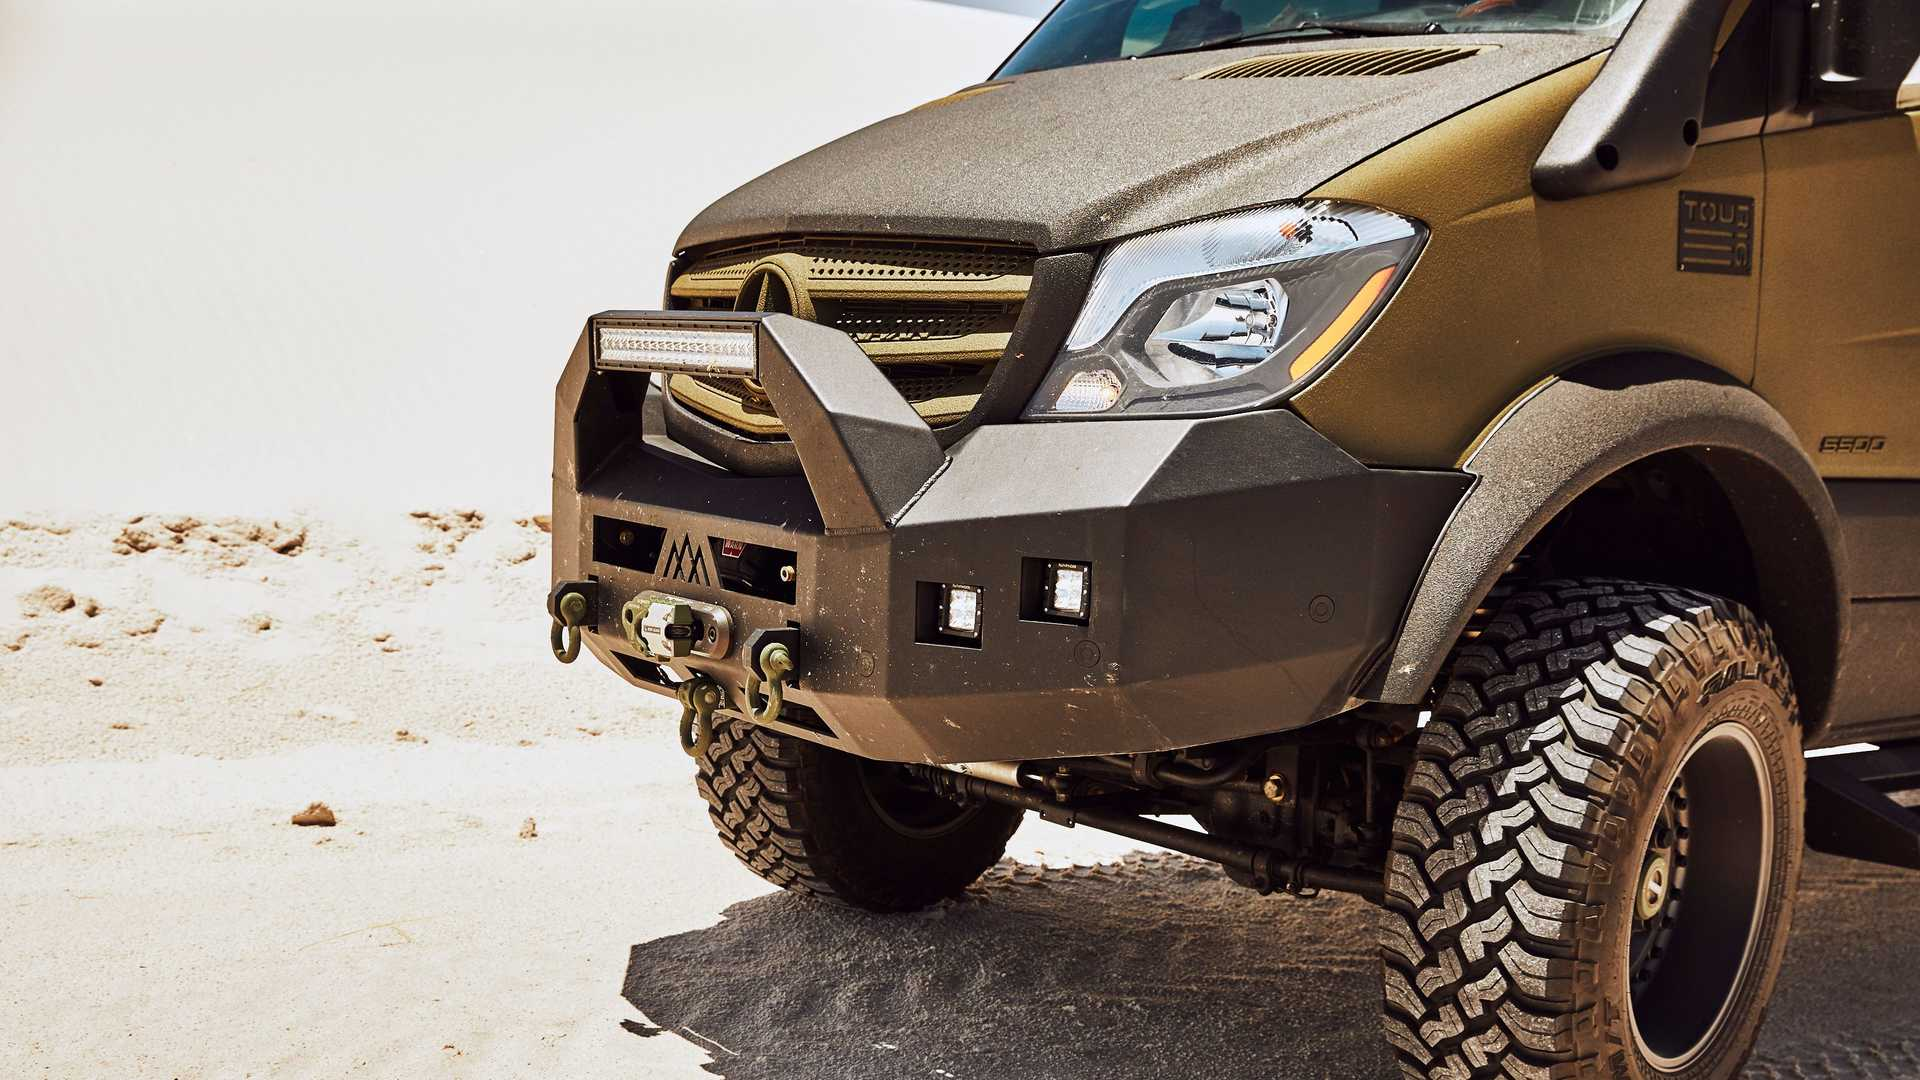 This Sprinter Expedition Camper Van Is Hulked Out For Off Roading